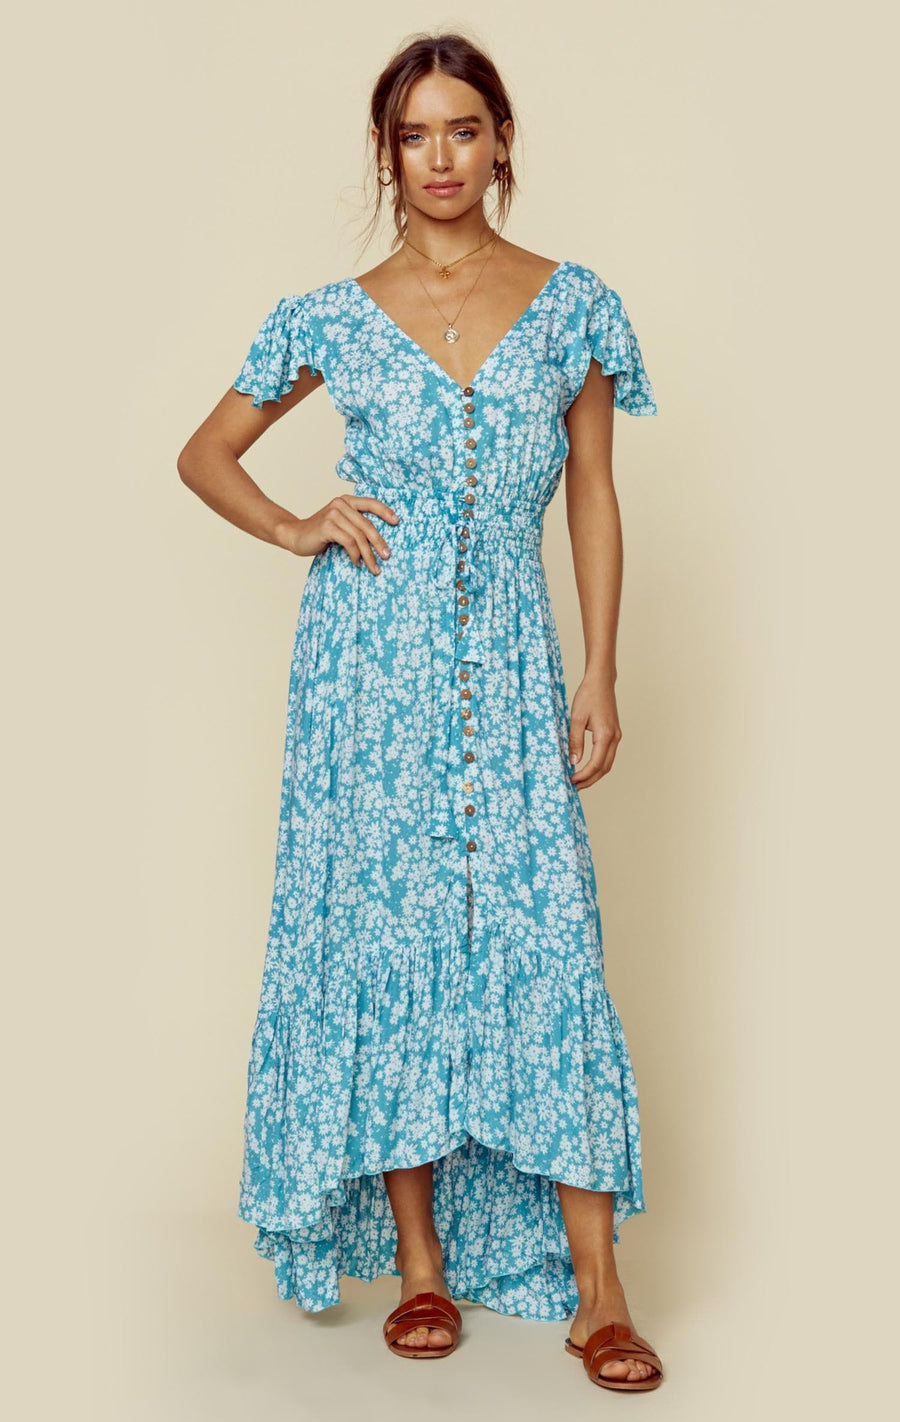 18a532754b NEW MOON MAXI. SCATTERED DAISY TOSCA; SCATTERED DAISY TOSCA ...